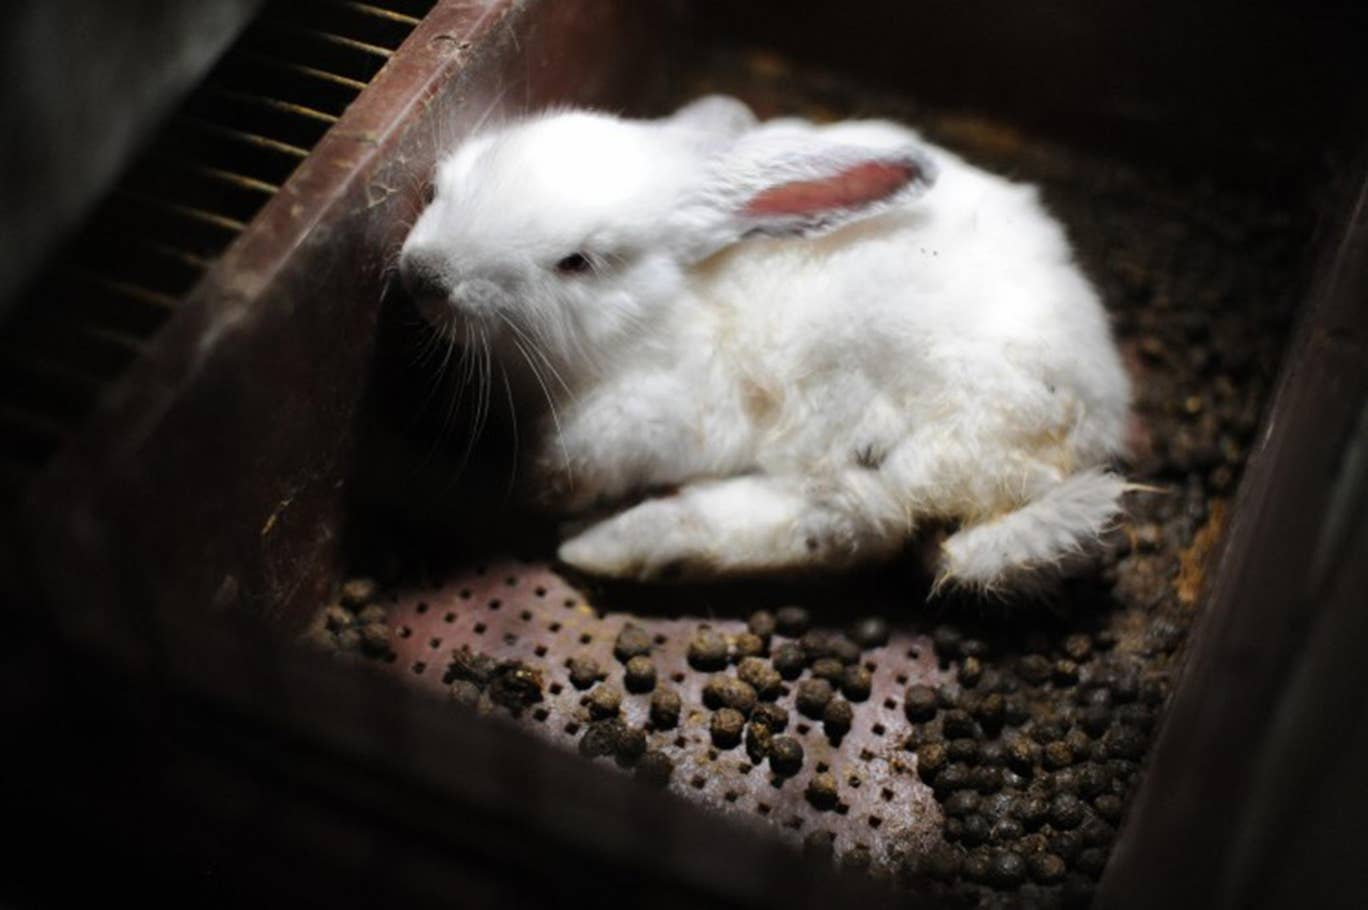 A rabbit lies at the bottom of a cage, surrounded by feces